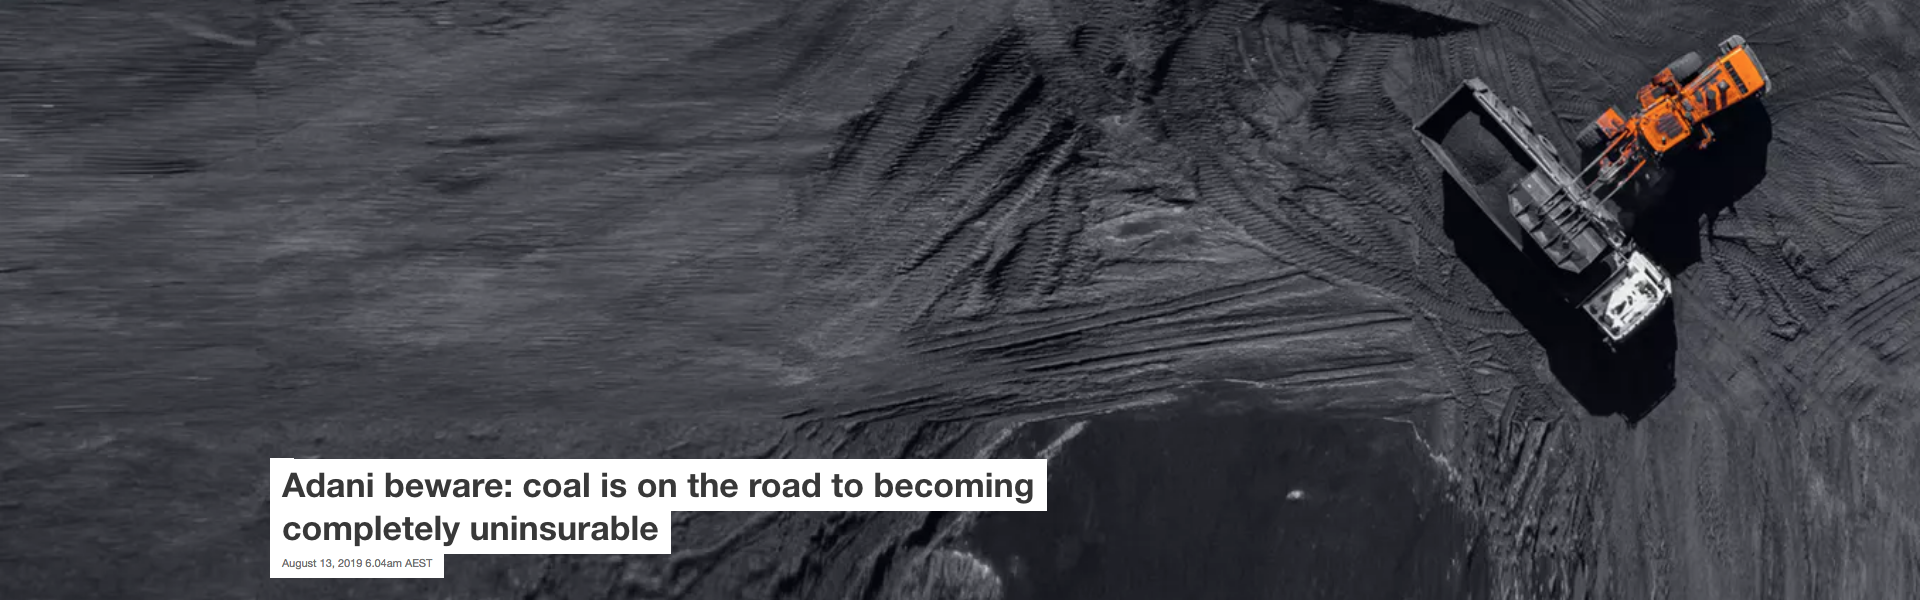 Screenshot_2019-08-13 Adani beware coal is on the road to becoming completely uninsurable.png